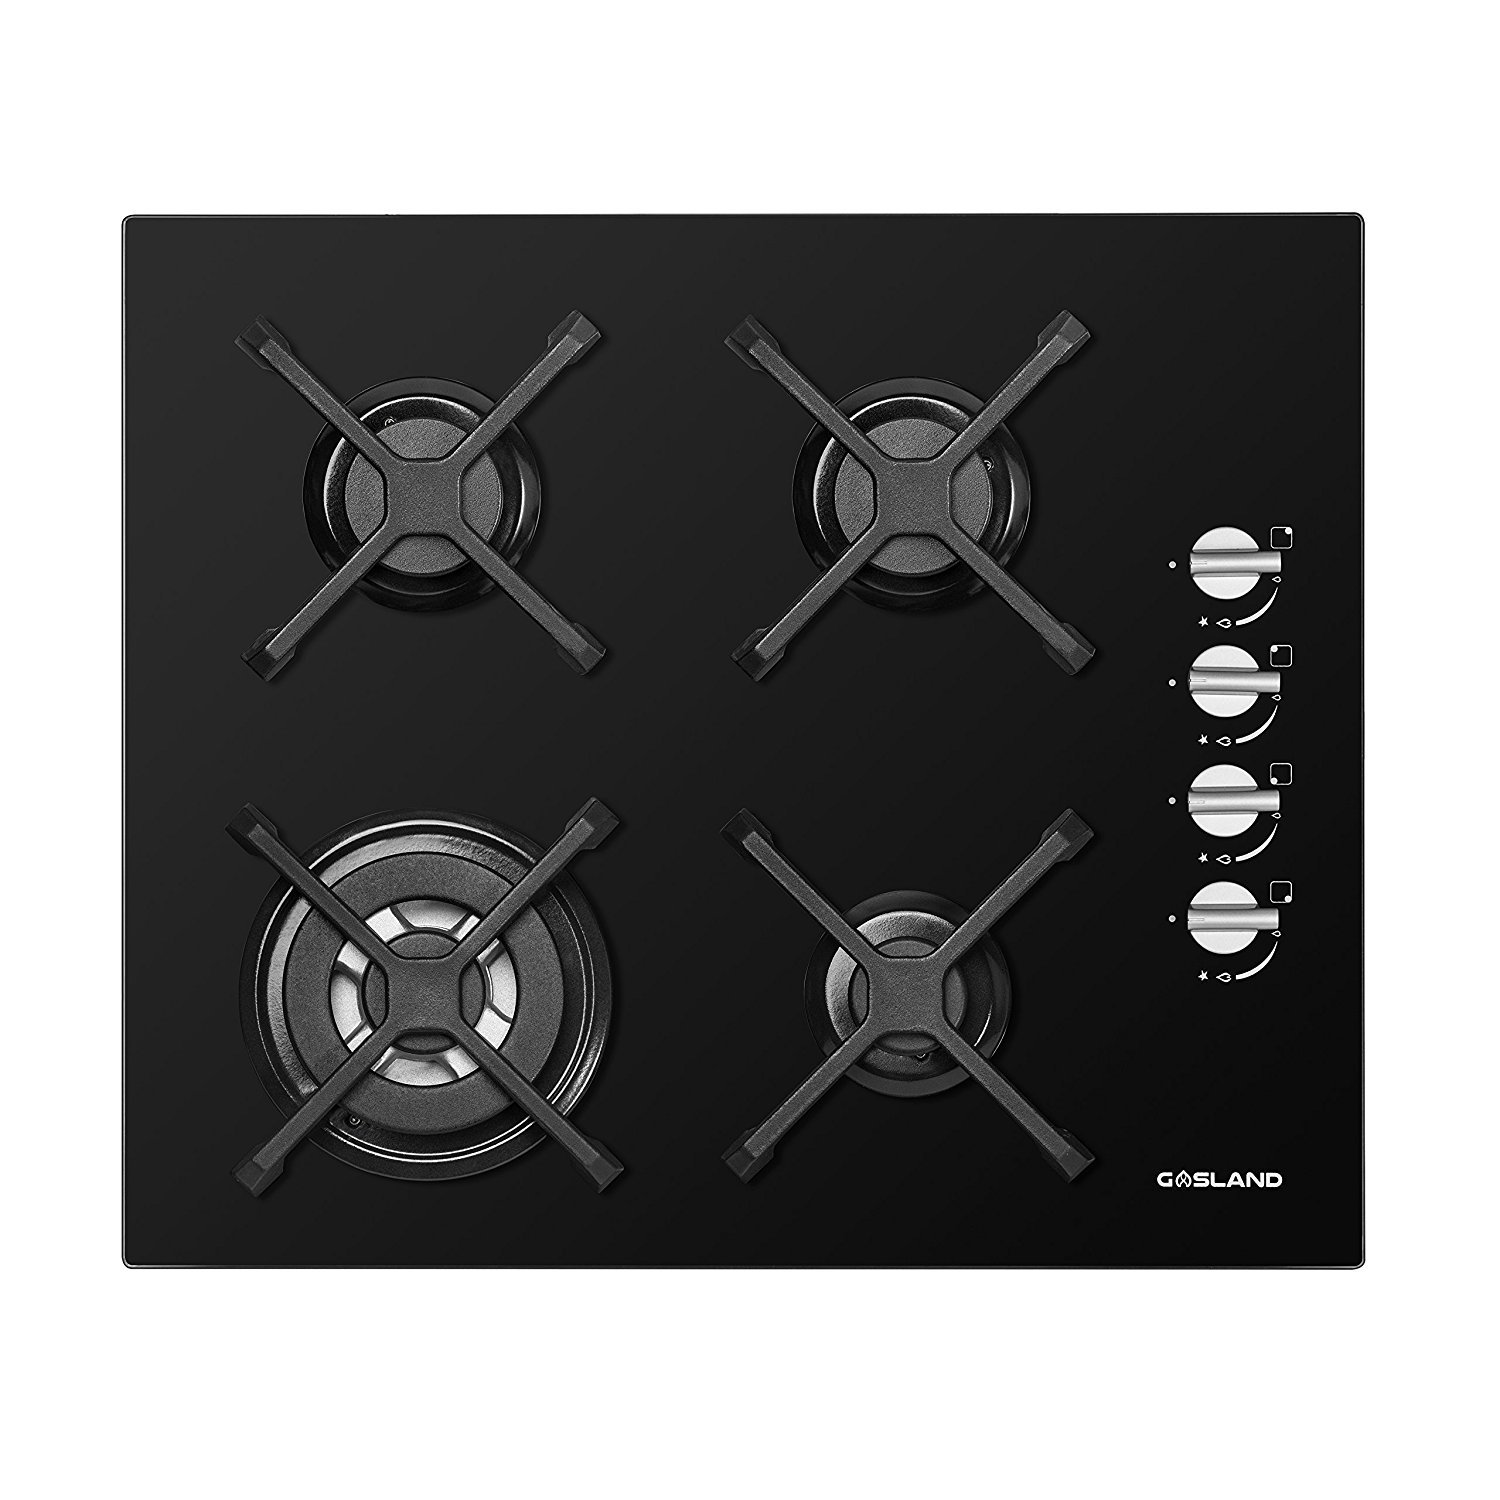 GASLAND chef GH60BS 60cm Built-in 4 Burner Gas on Glass Hob Cooker Cooktop with FFD in BLACK Camplux